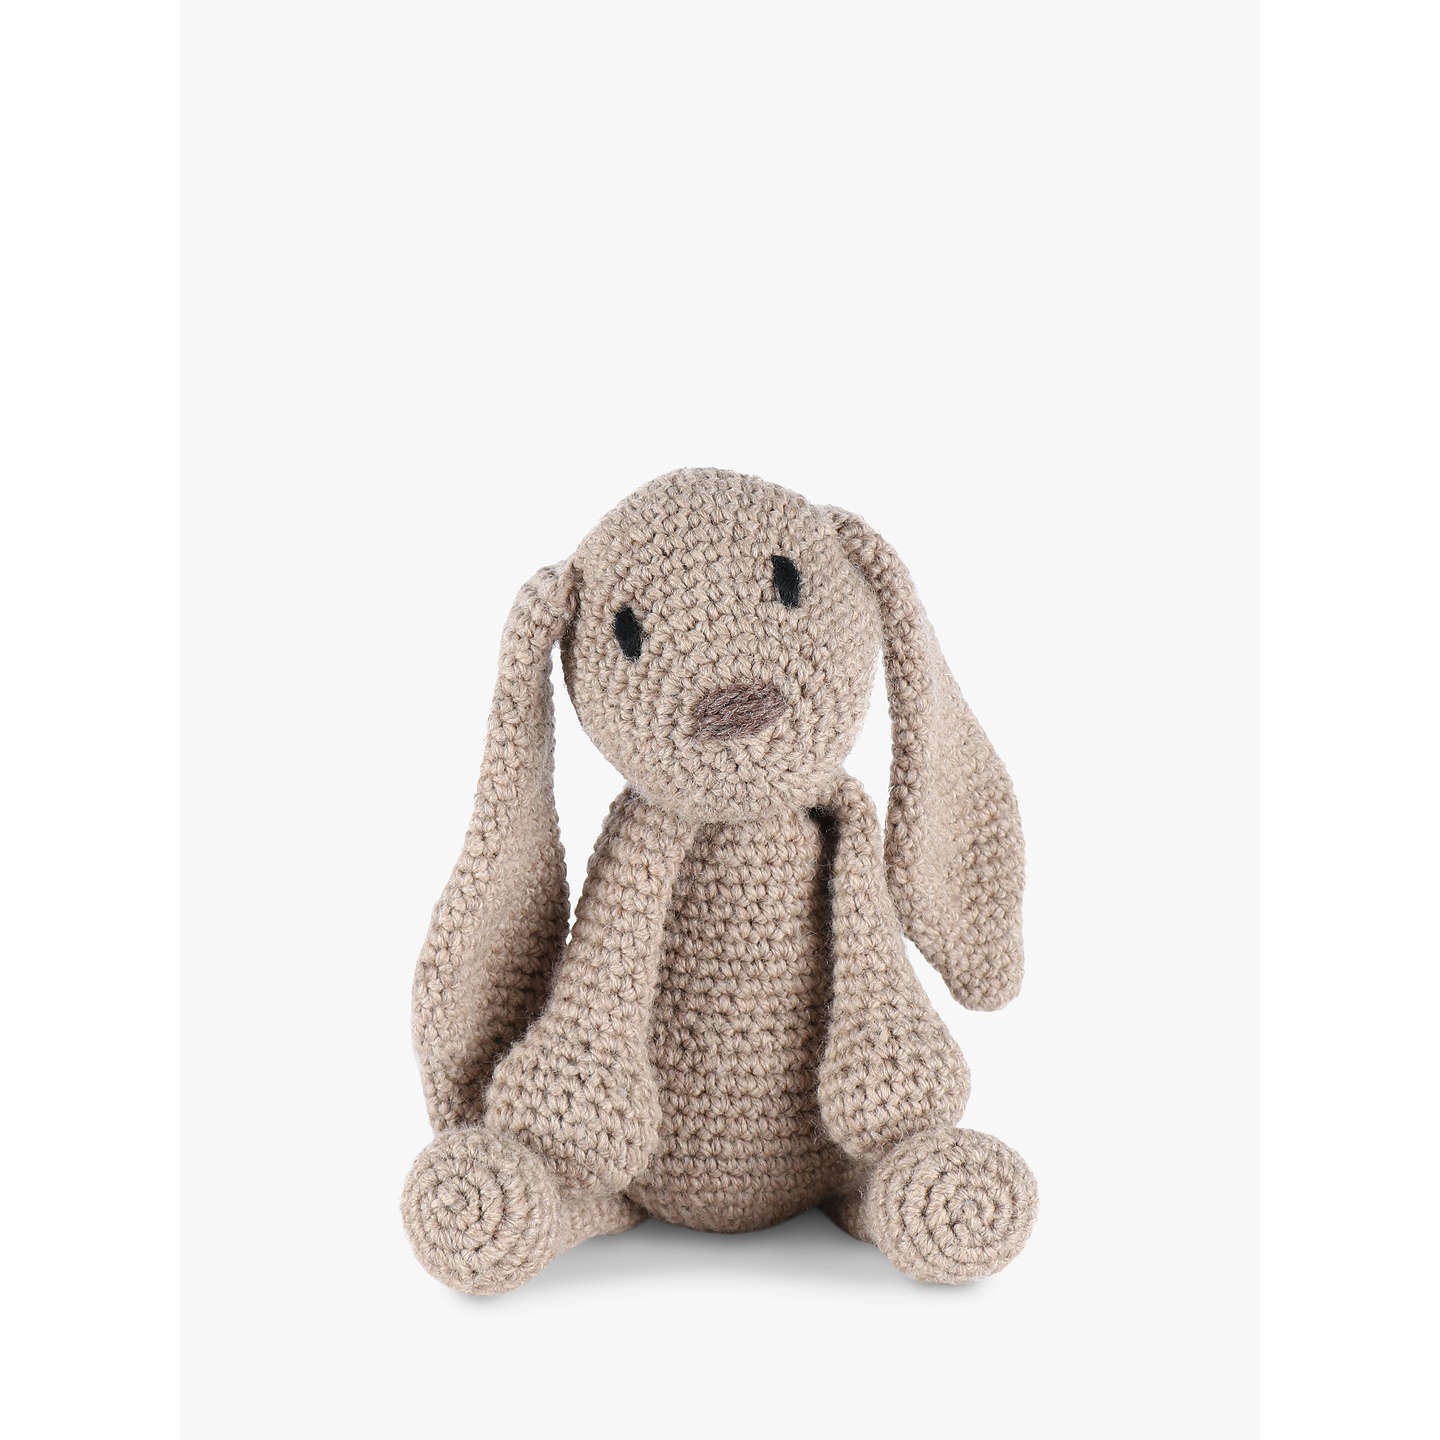 BuyToft Emma the Bunny Crochet Kit Online at johnlewis.com